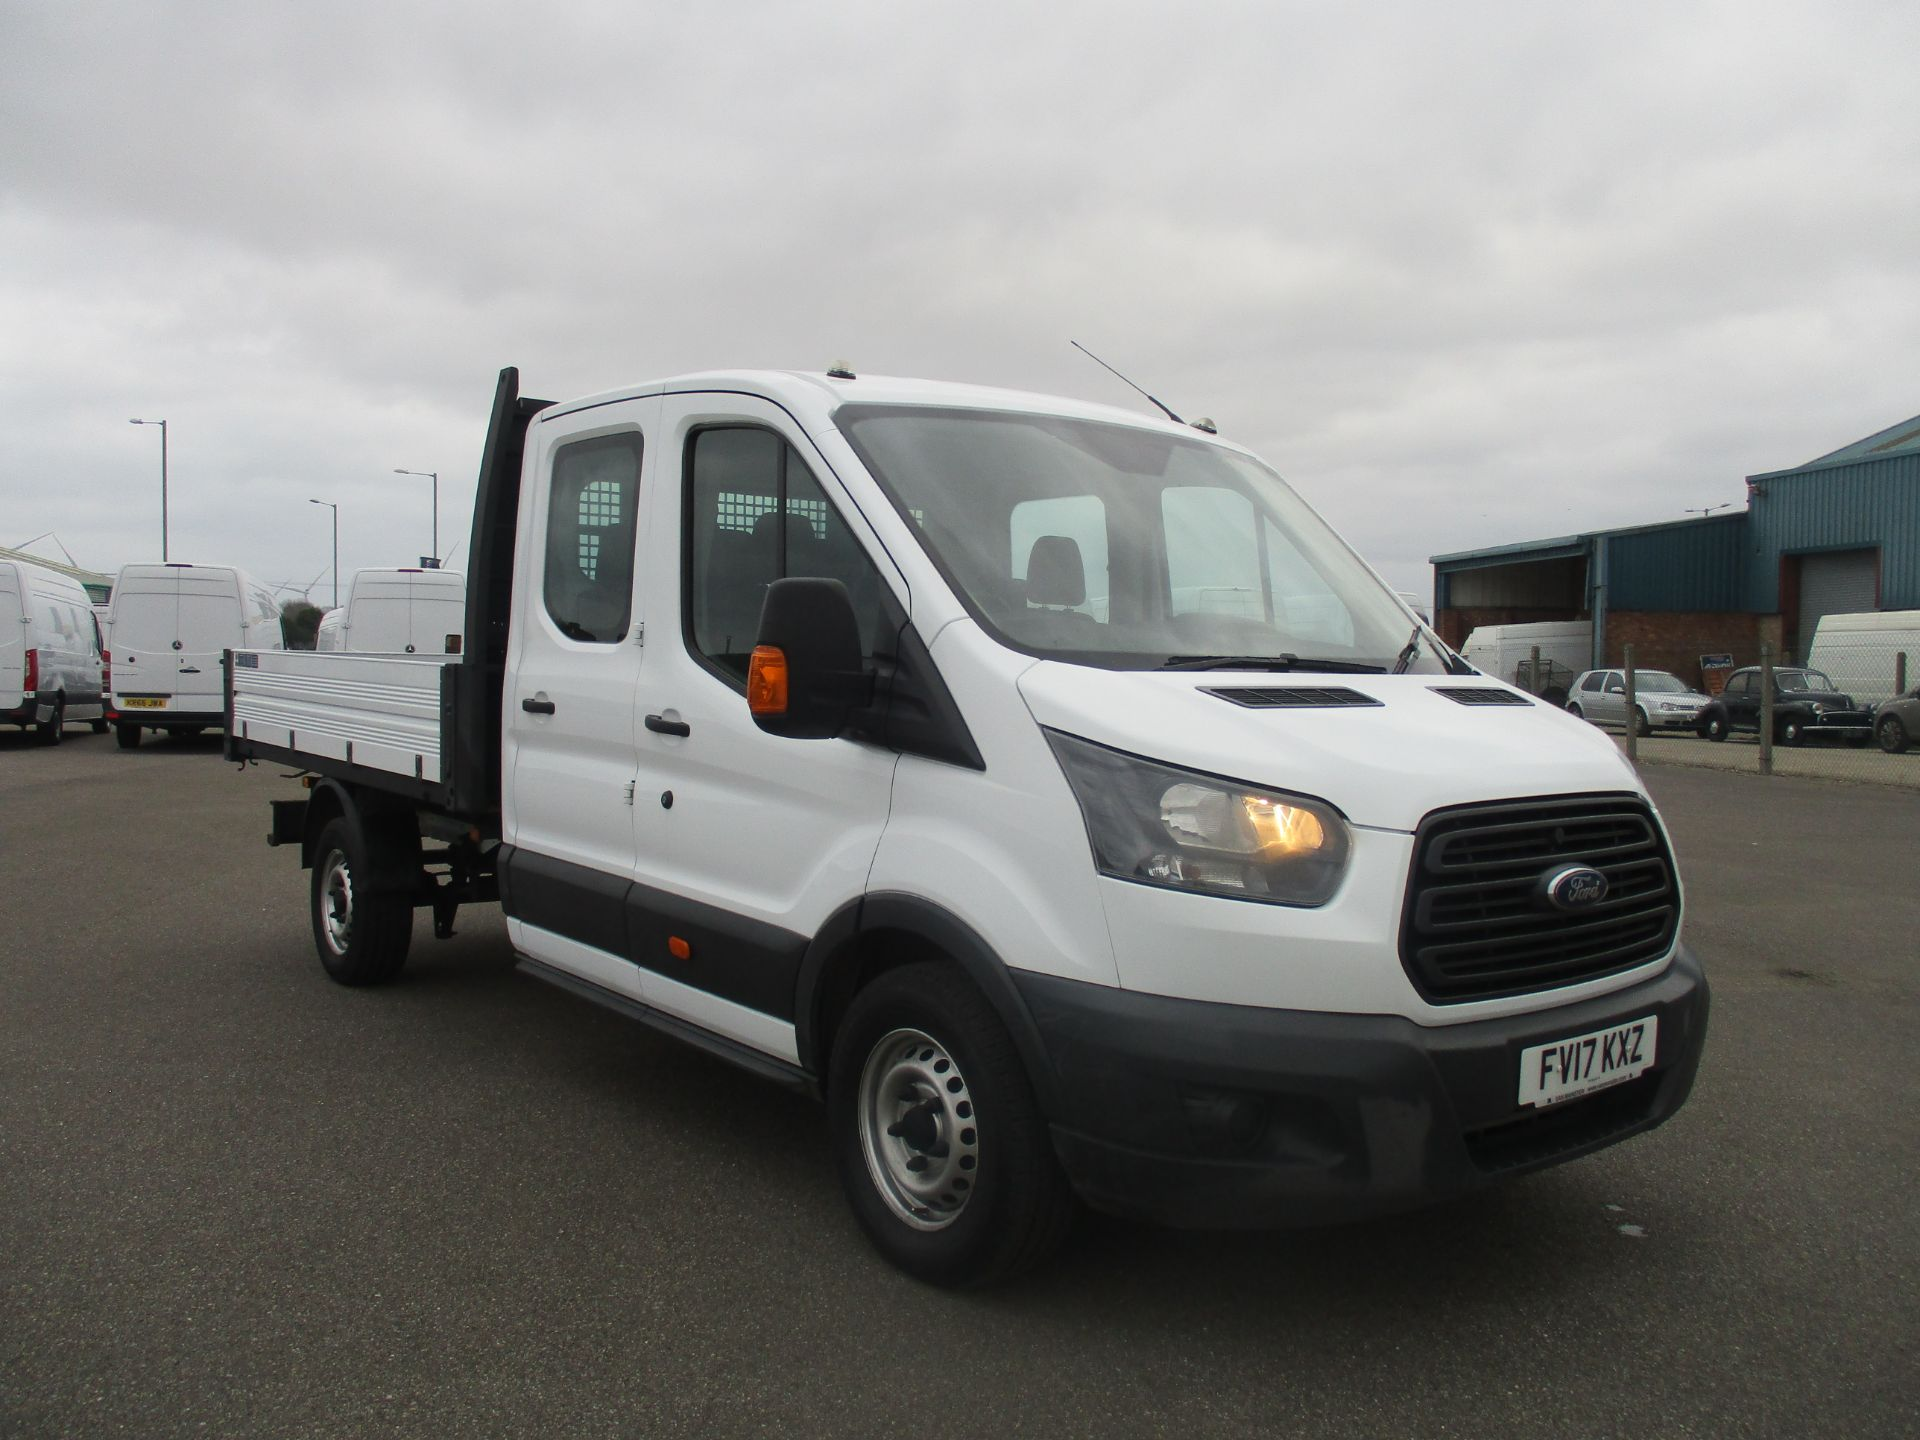 2017 Ford Transit 350 L3 DOUBLE CAB TIPPER 130PS EURO 6 (FV17KXZ)